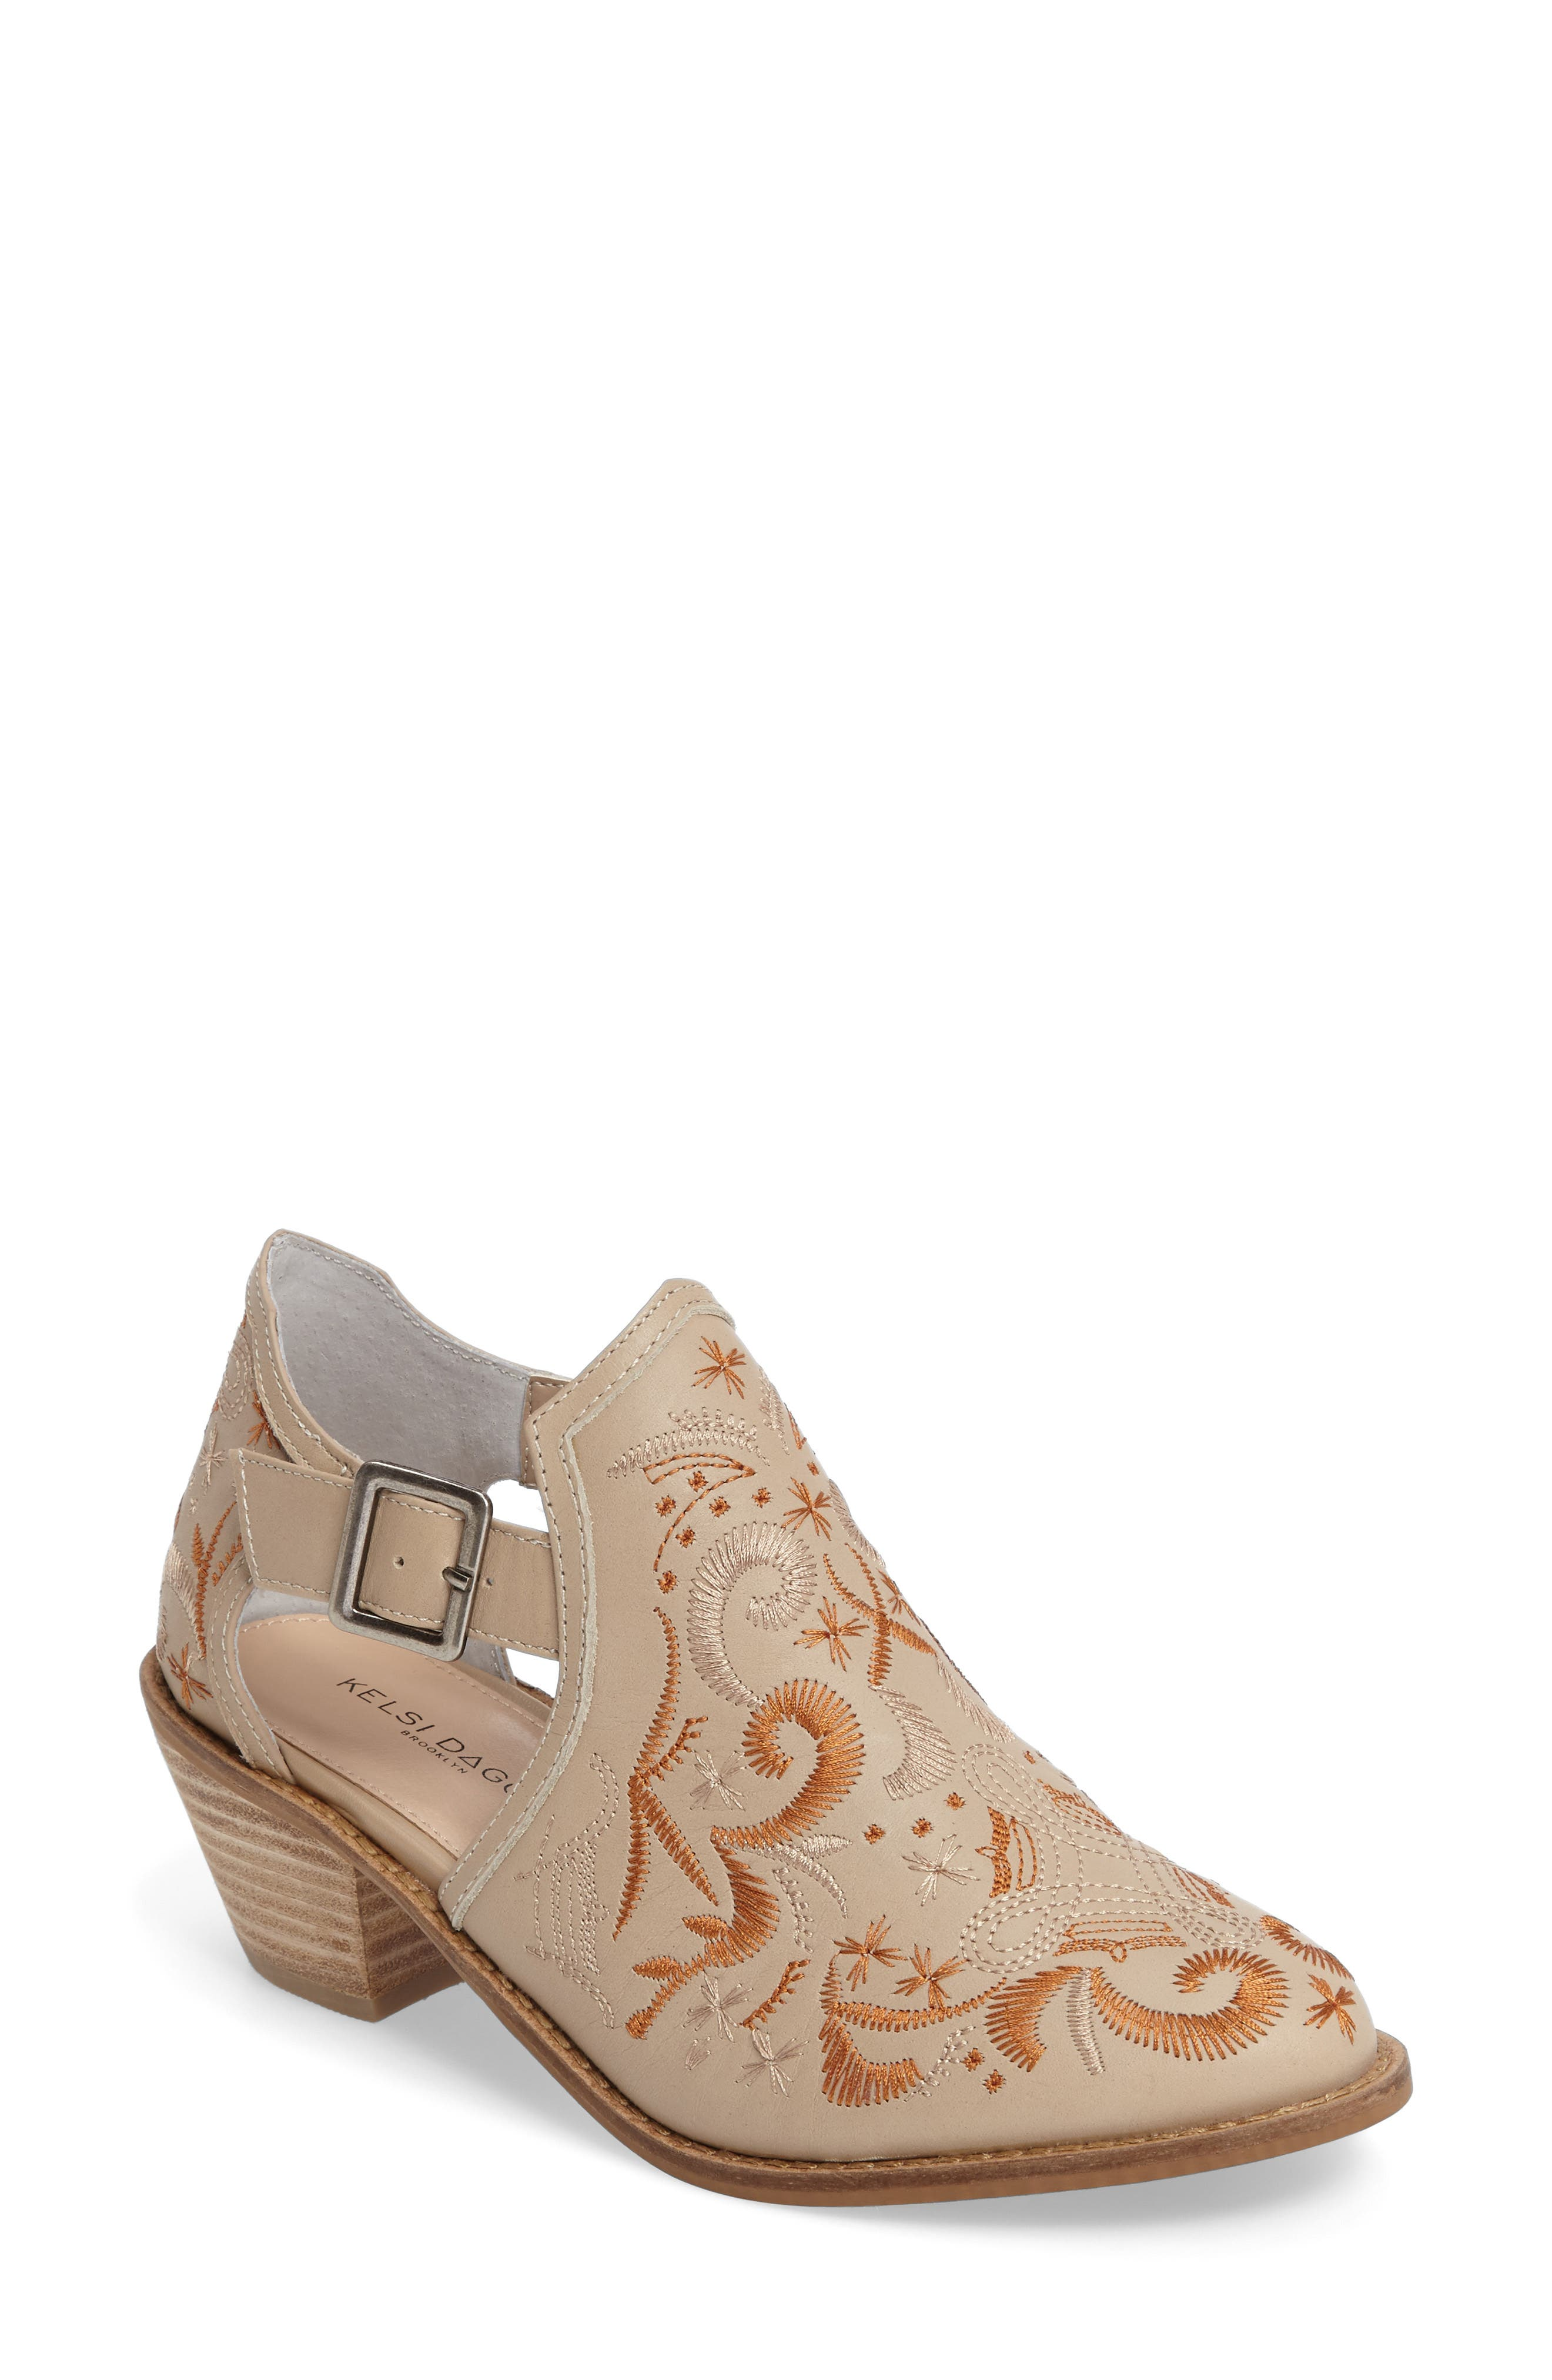 Kline Embroidered Bootie,                         Main,                         color, Wheat Leather